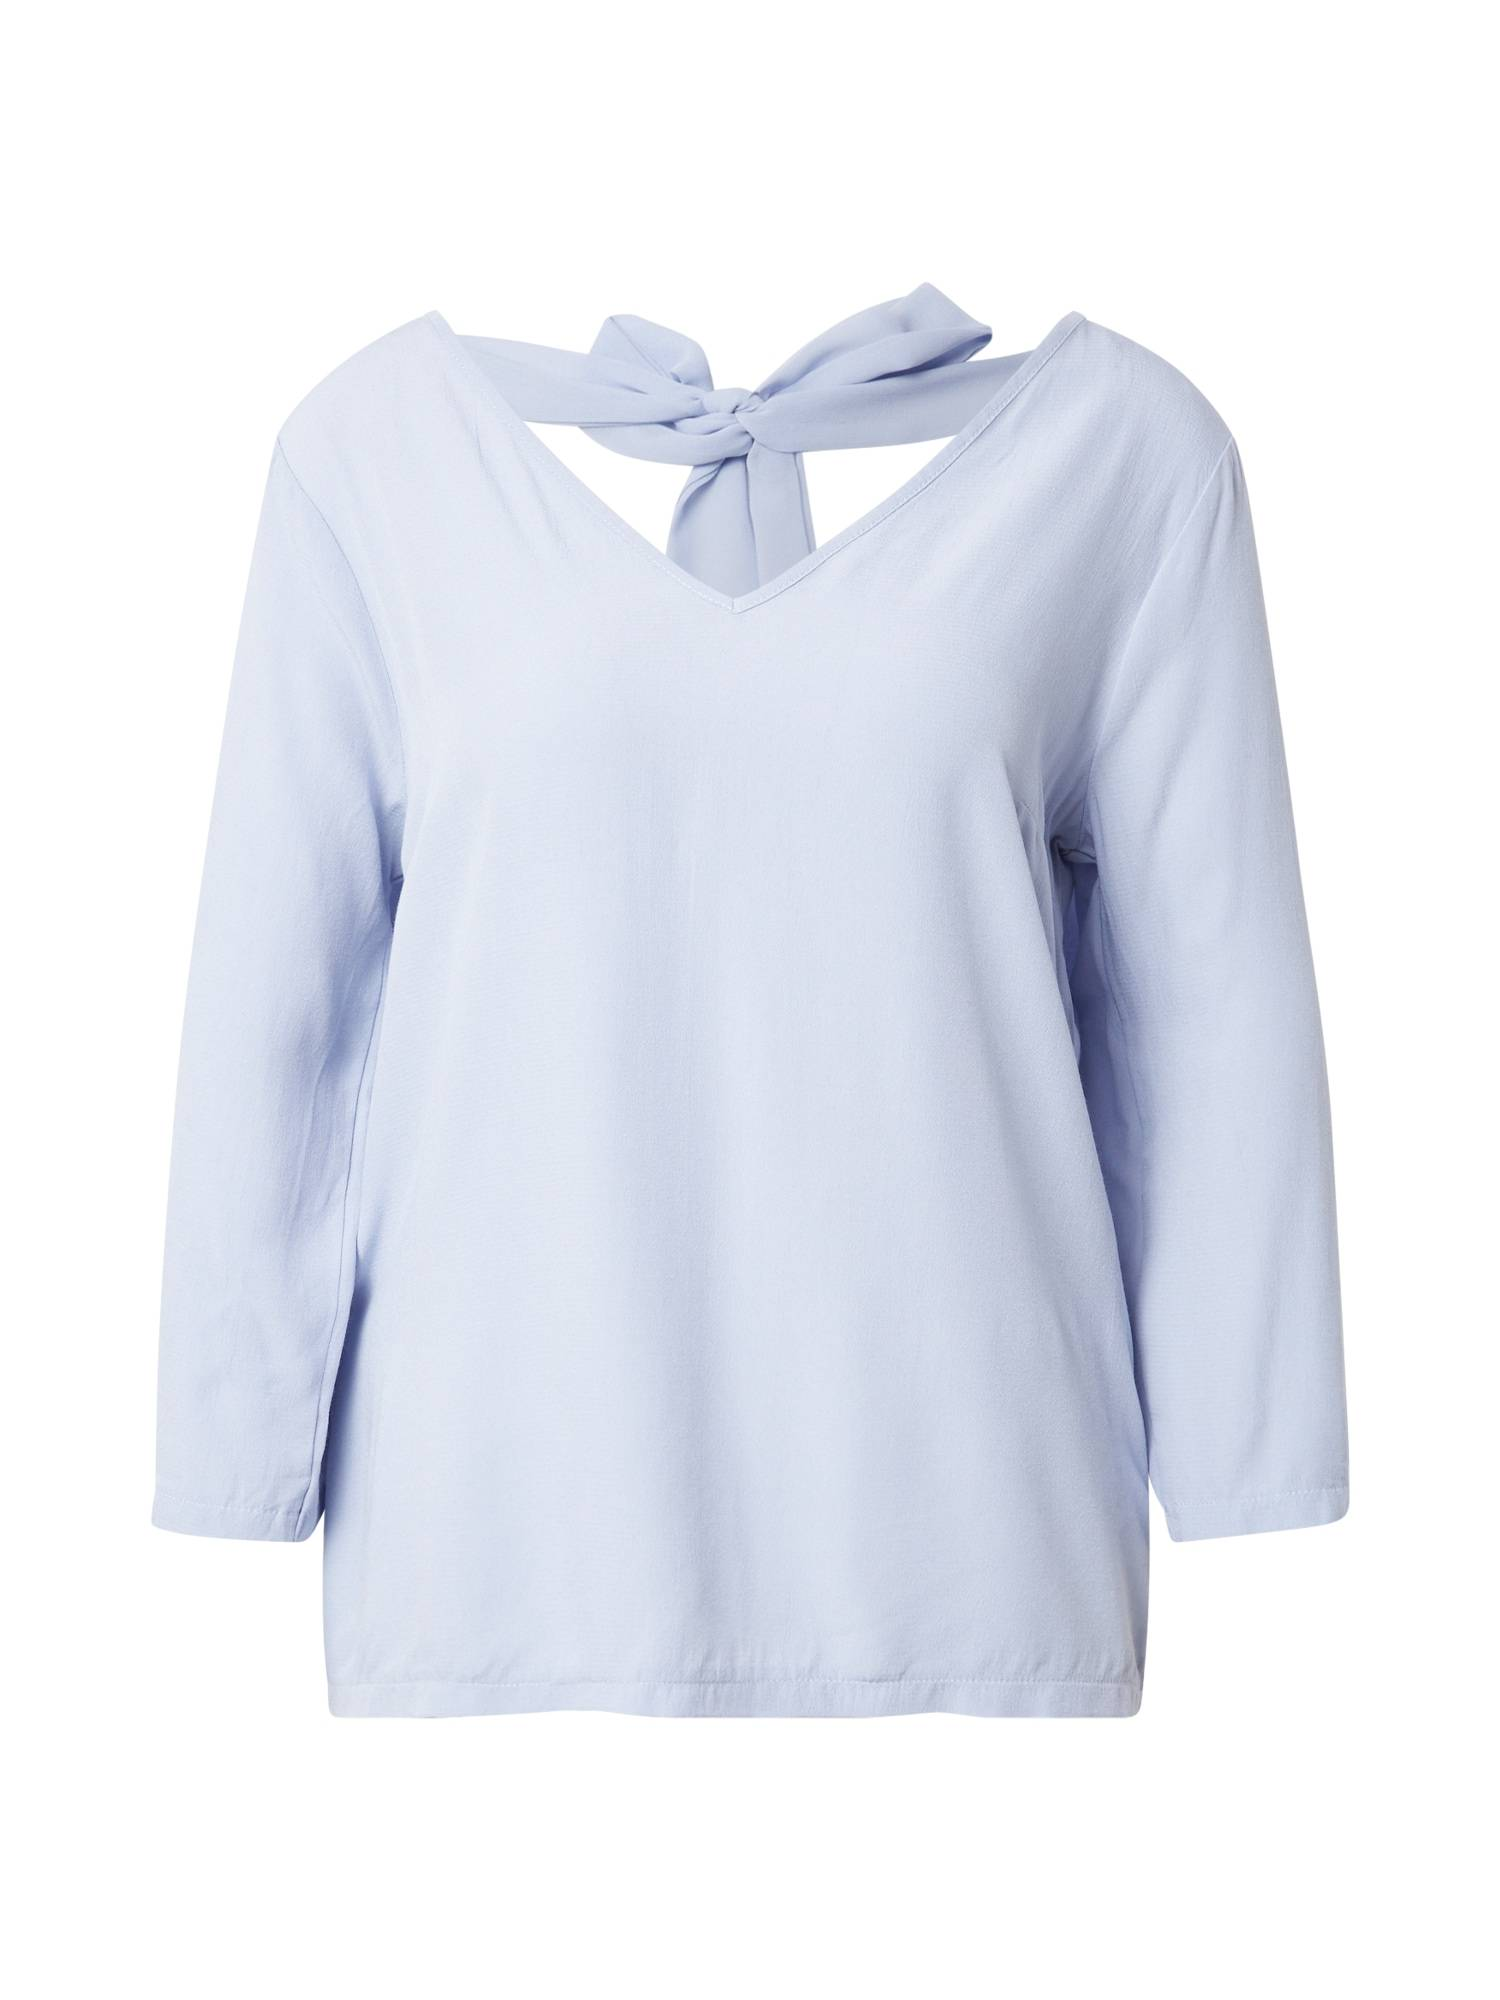 ABOUT YOU Chemisier 'Farine'  - Bleu - Taille: 40 - female